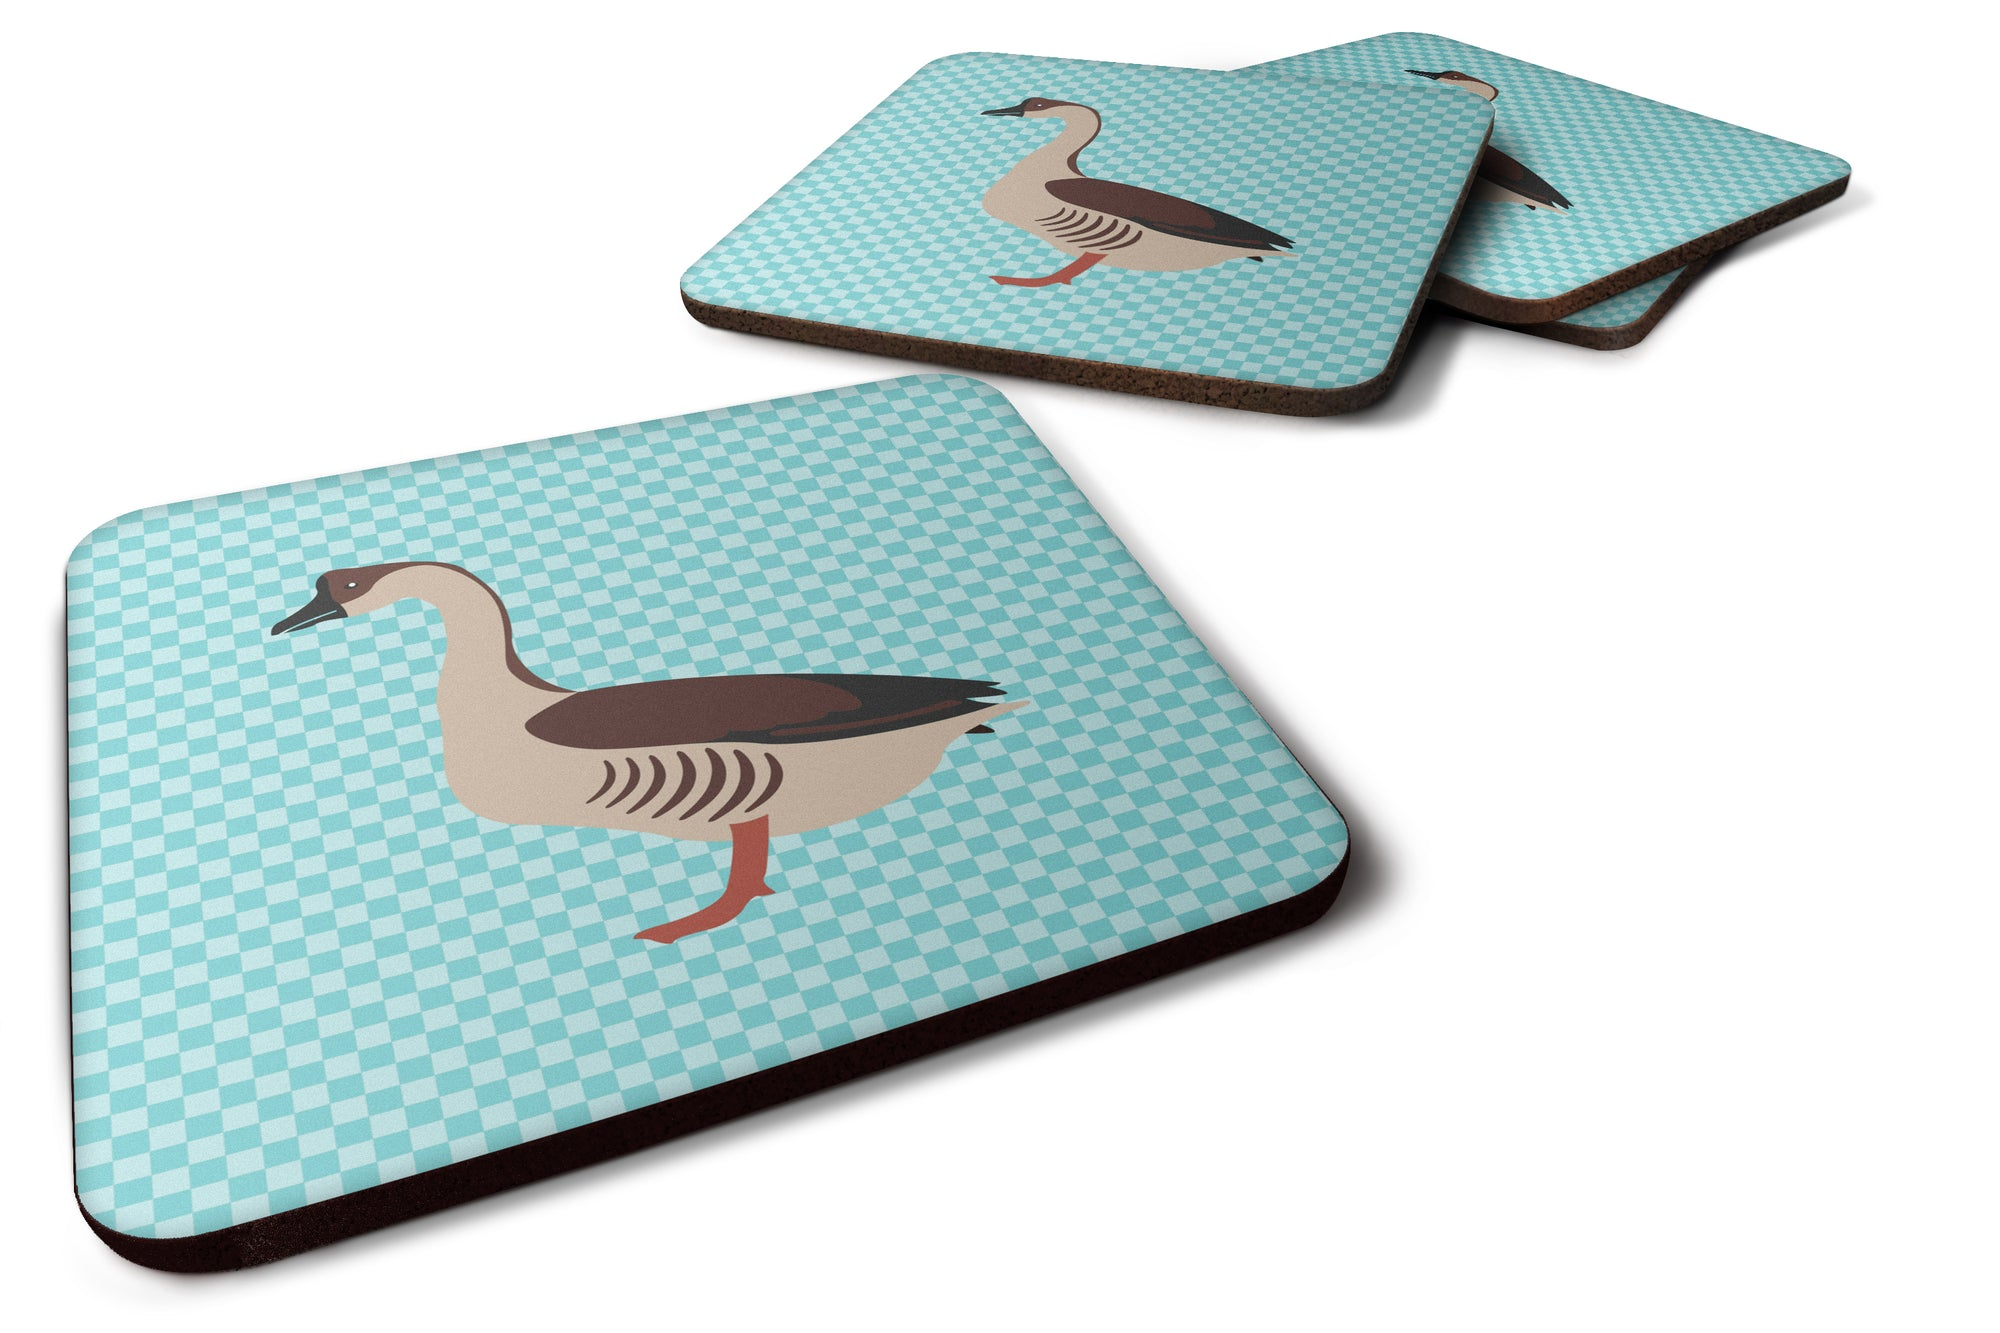 Chinese Goose Blue Check Foam Coaster Set of 4 BB8070FC by Caroline's Treasures